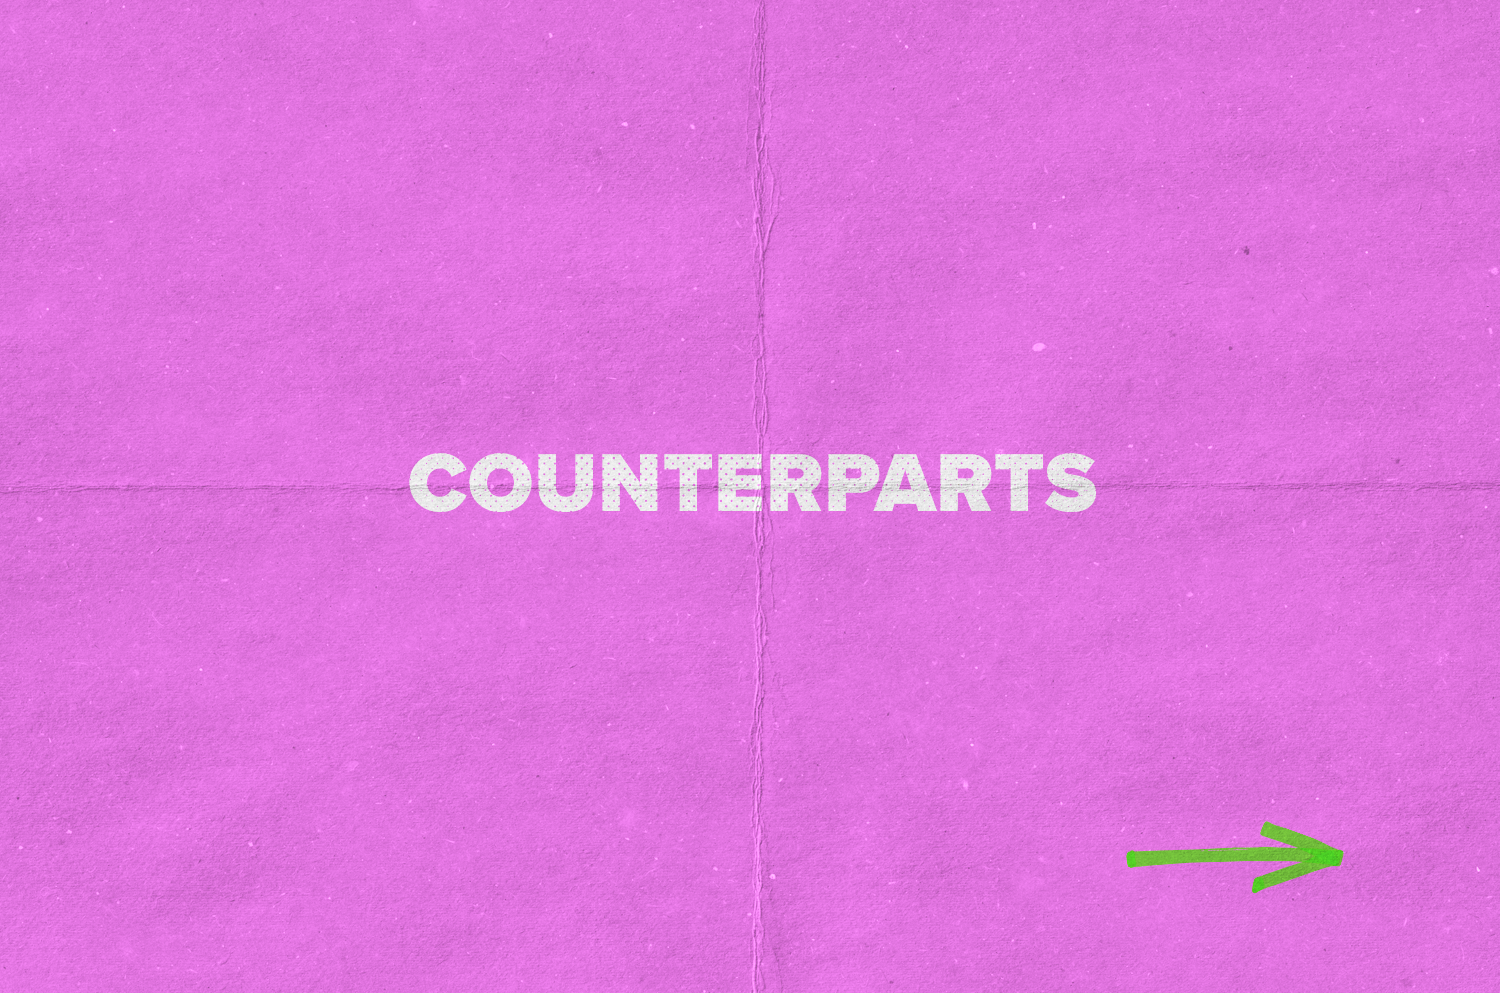 Counterparts_ImageGalleryTitleCard.png